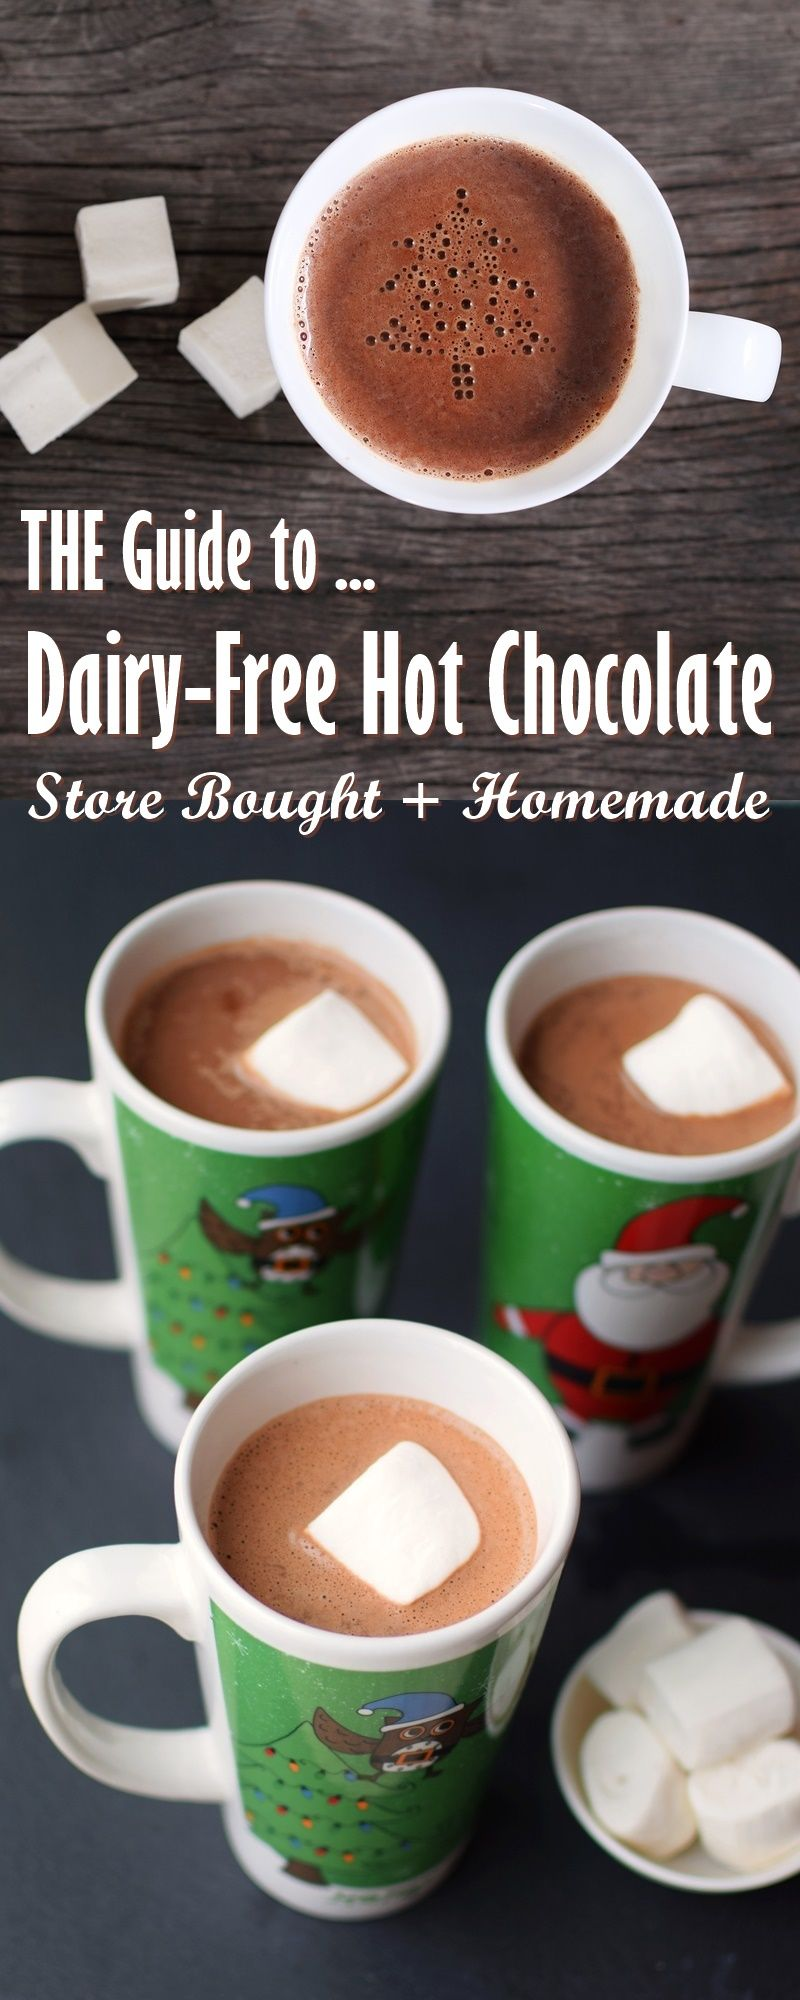 DairyFree Hot Chocolate Guide with Hot Cocoa Brands and